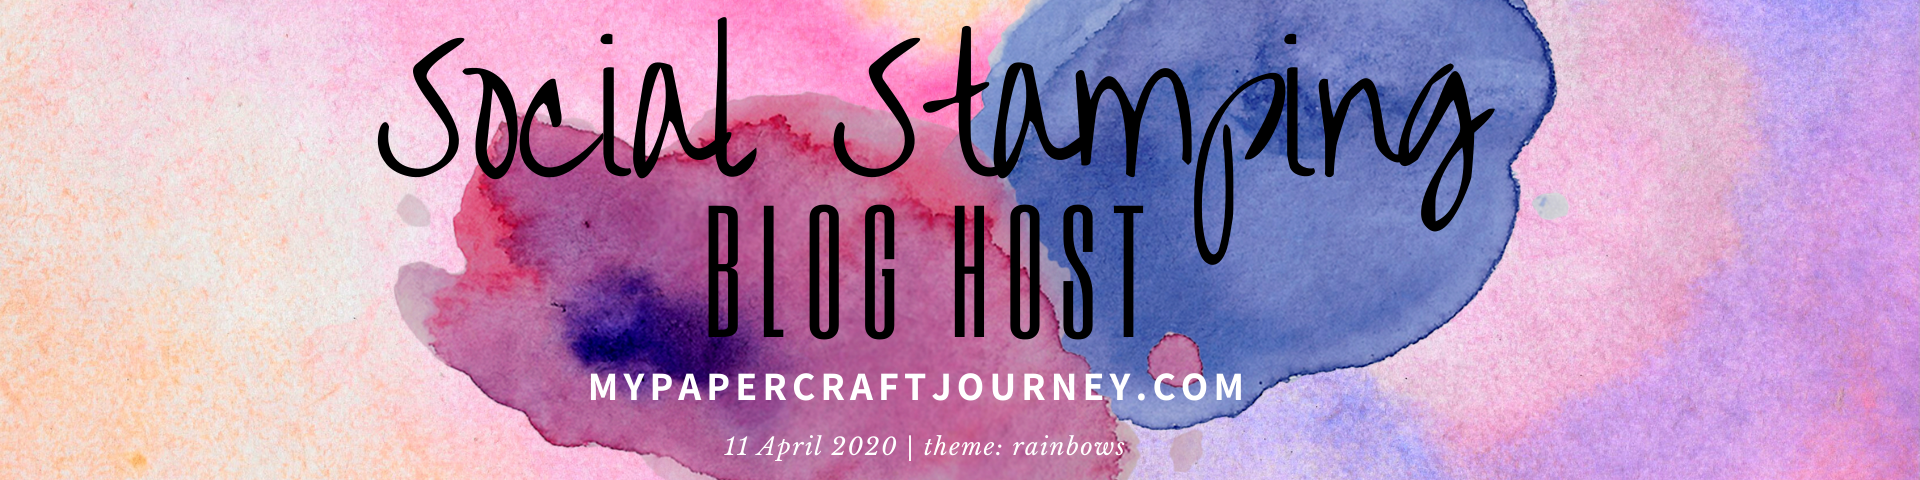 Social Stamping Blog Host 11 April Header